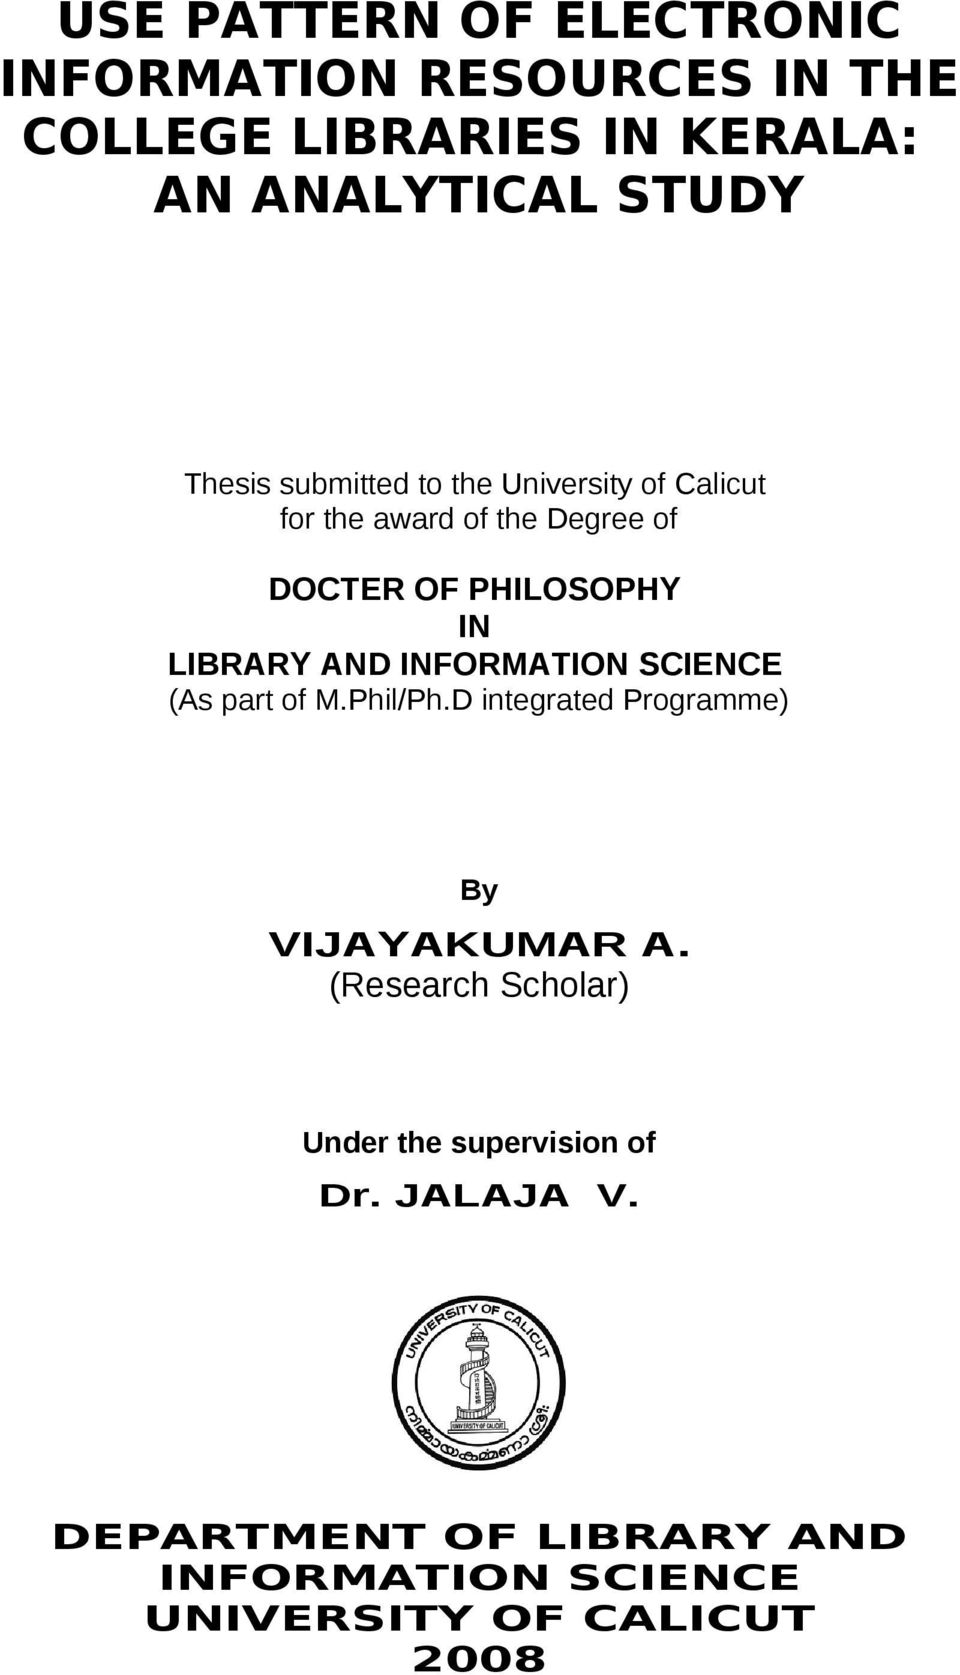 LIBRARY AND INFORMATION SCIENCE (As part of M.Phil/Ph.D integrated Programme) By VIJAYAKUMAR A.